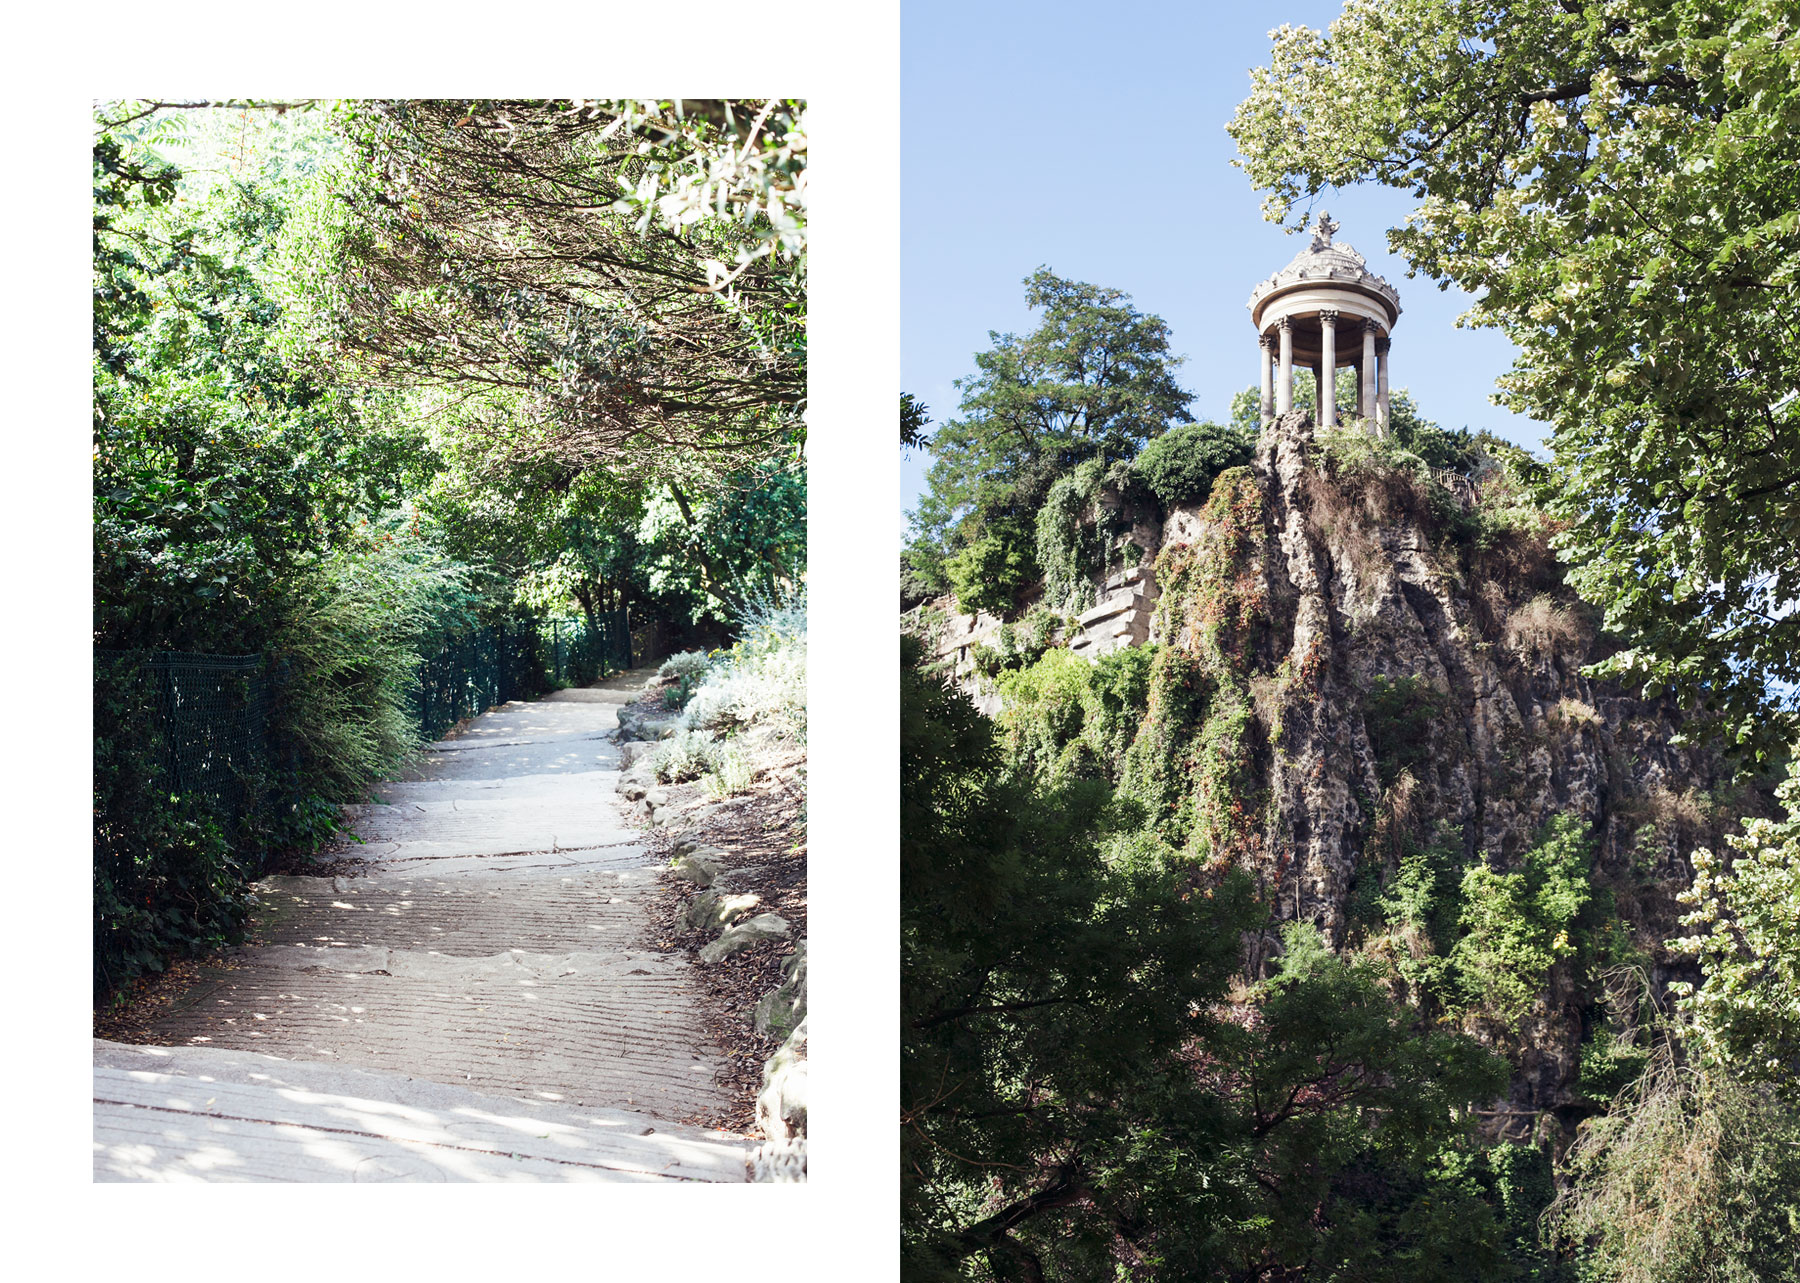 Parc des Buttes-Chaumont by Carin Olsson (Paris in Four Months)